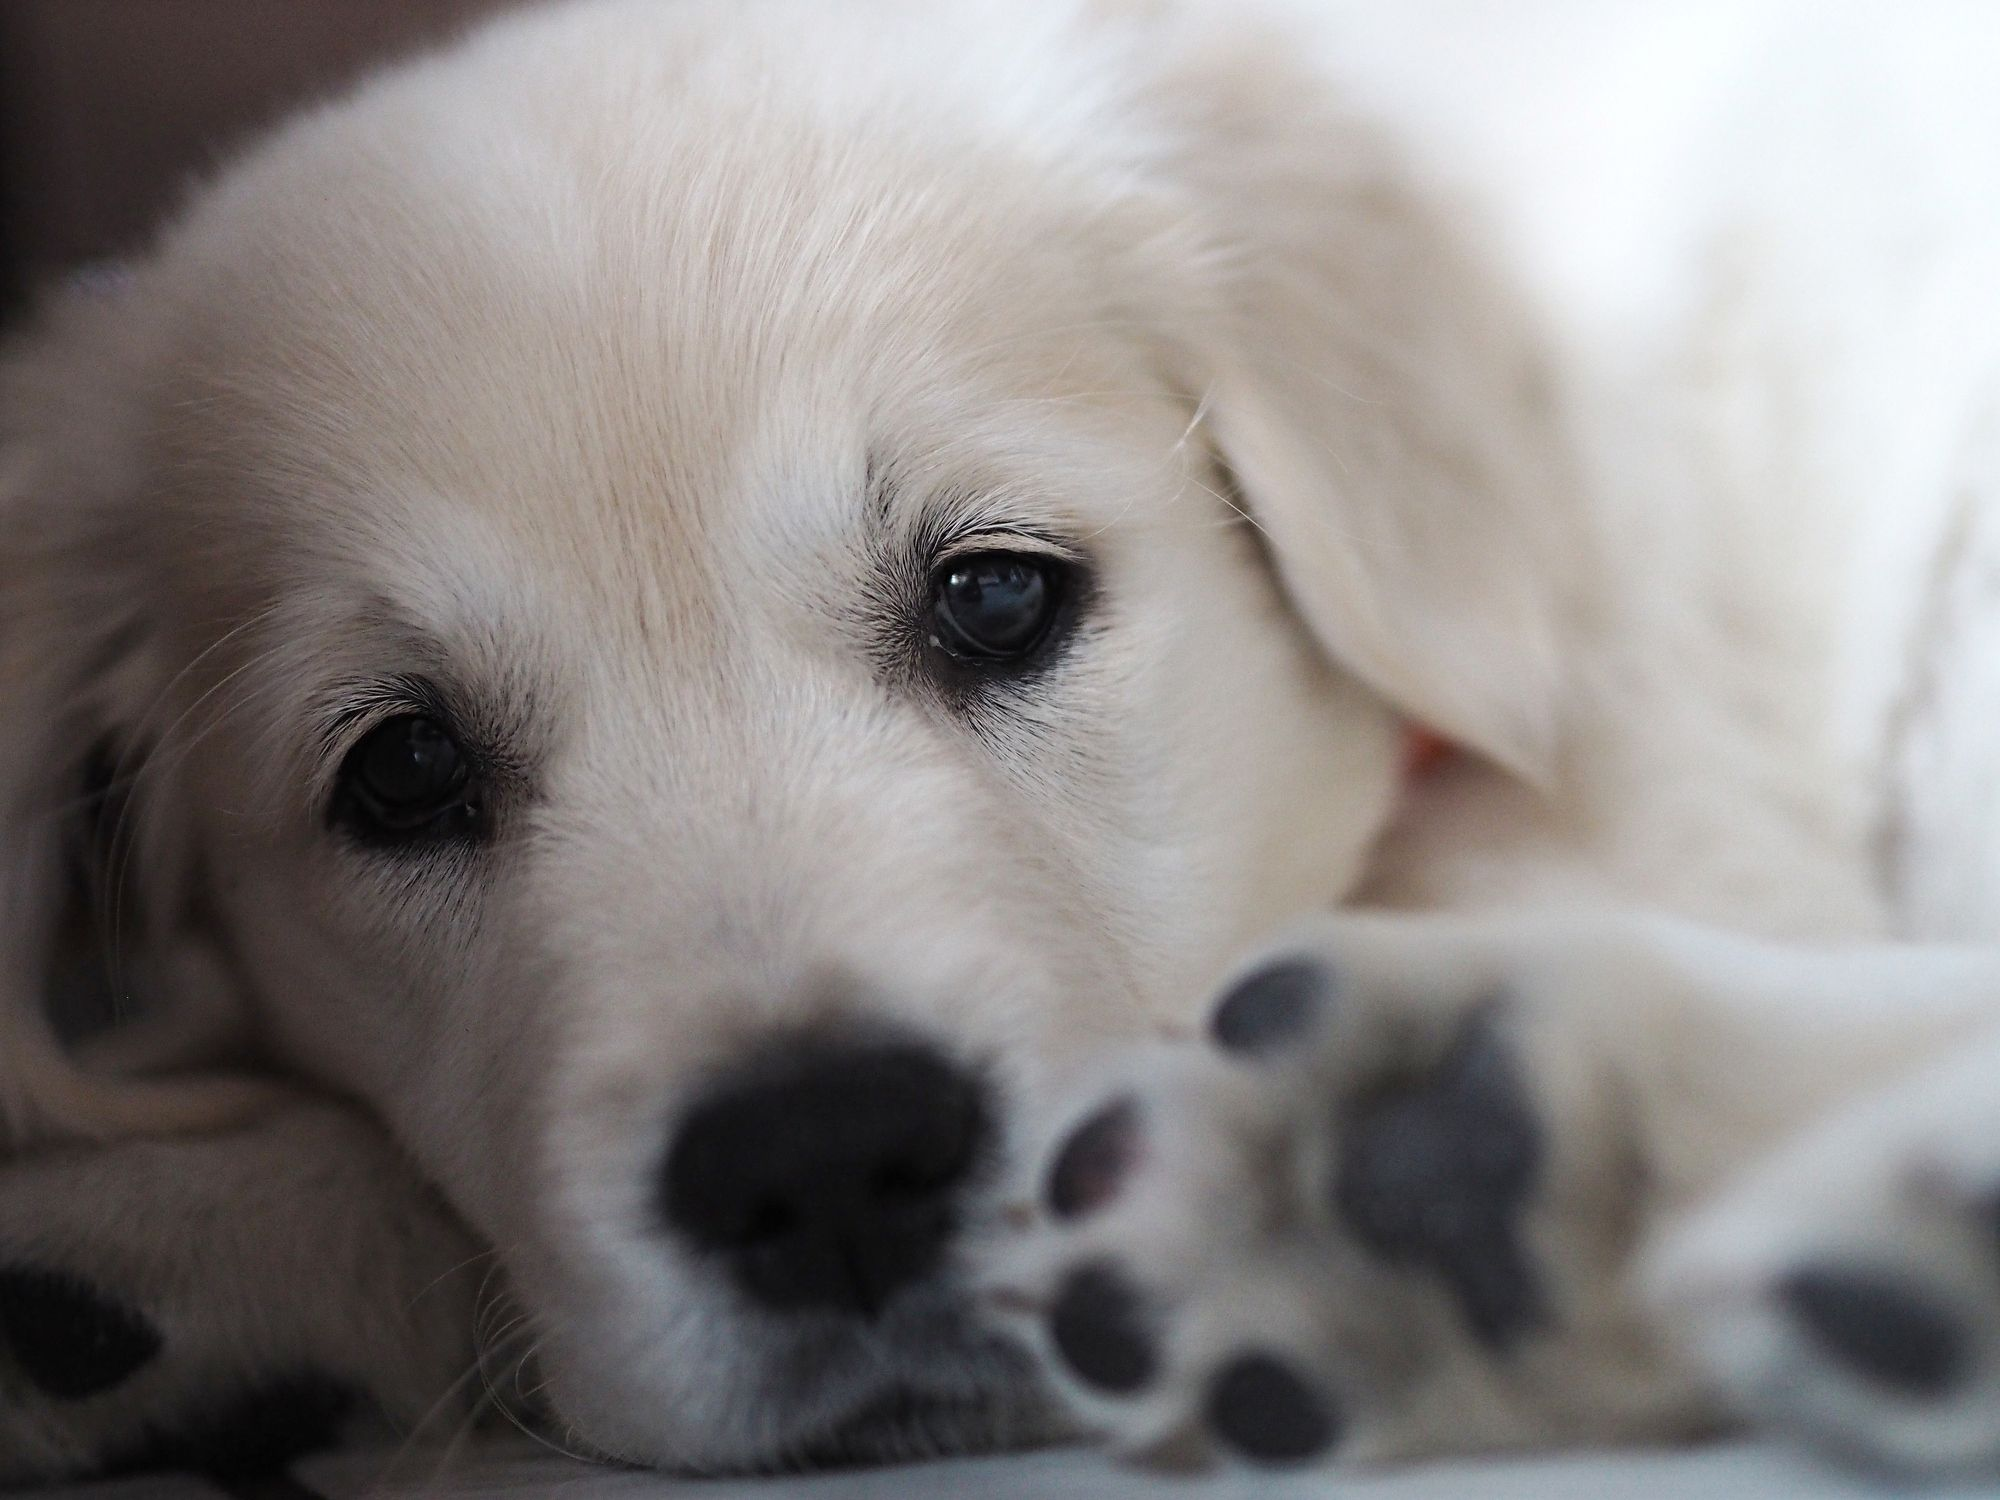 Puppy lying down and looking at the camera. | Photo: Getty Images